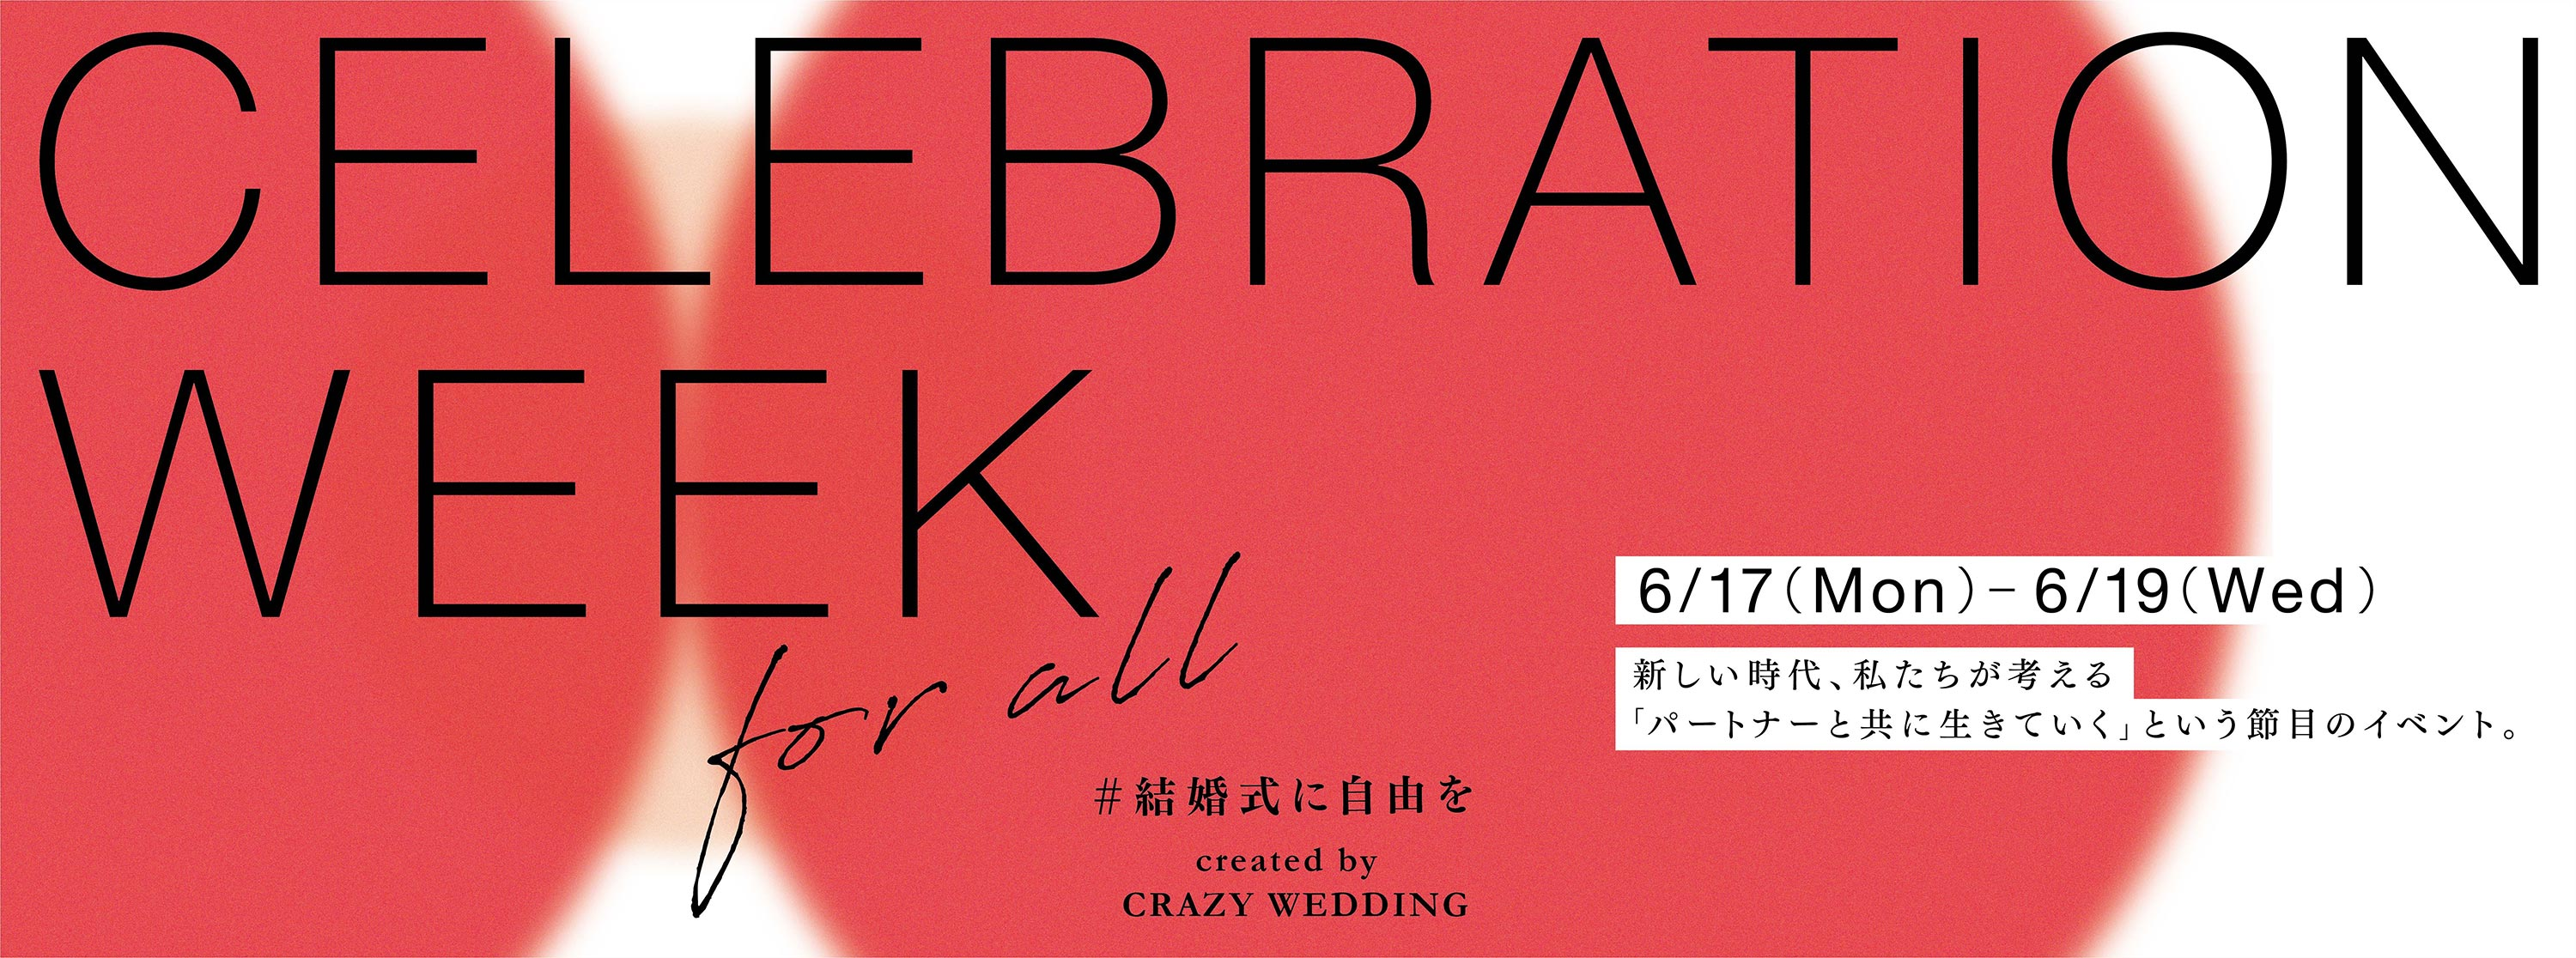 CELEBRATION WEEK for all 6/17(Mon)-6/19(Wed)